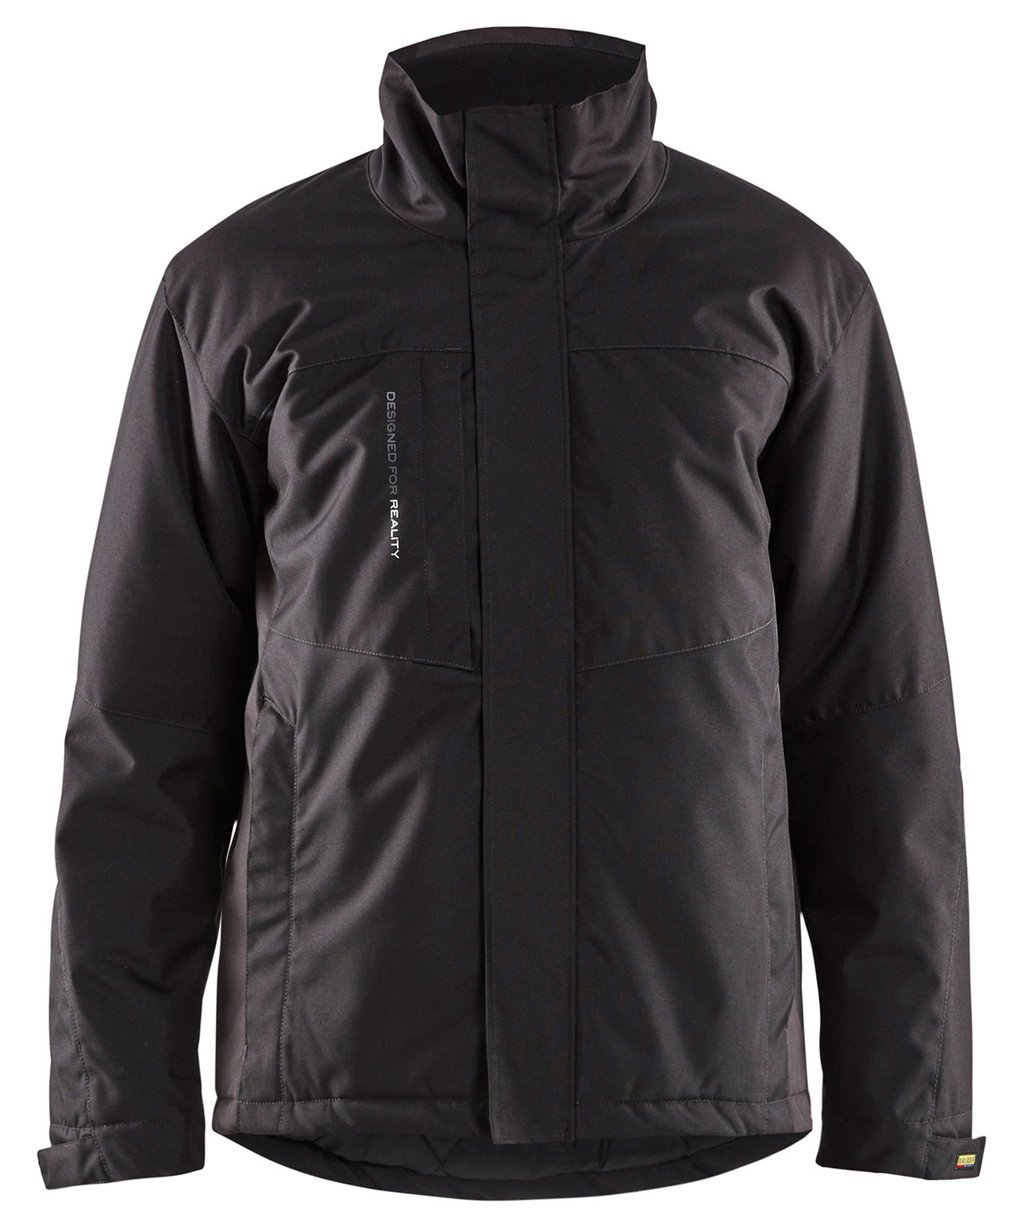 Blåkläder winter jacket, Black/Dark Grey